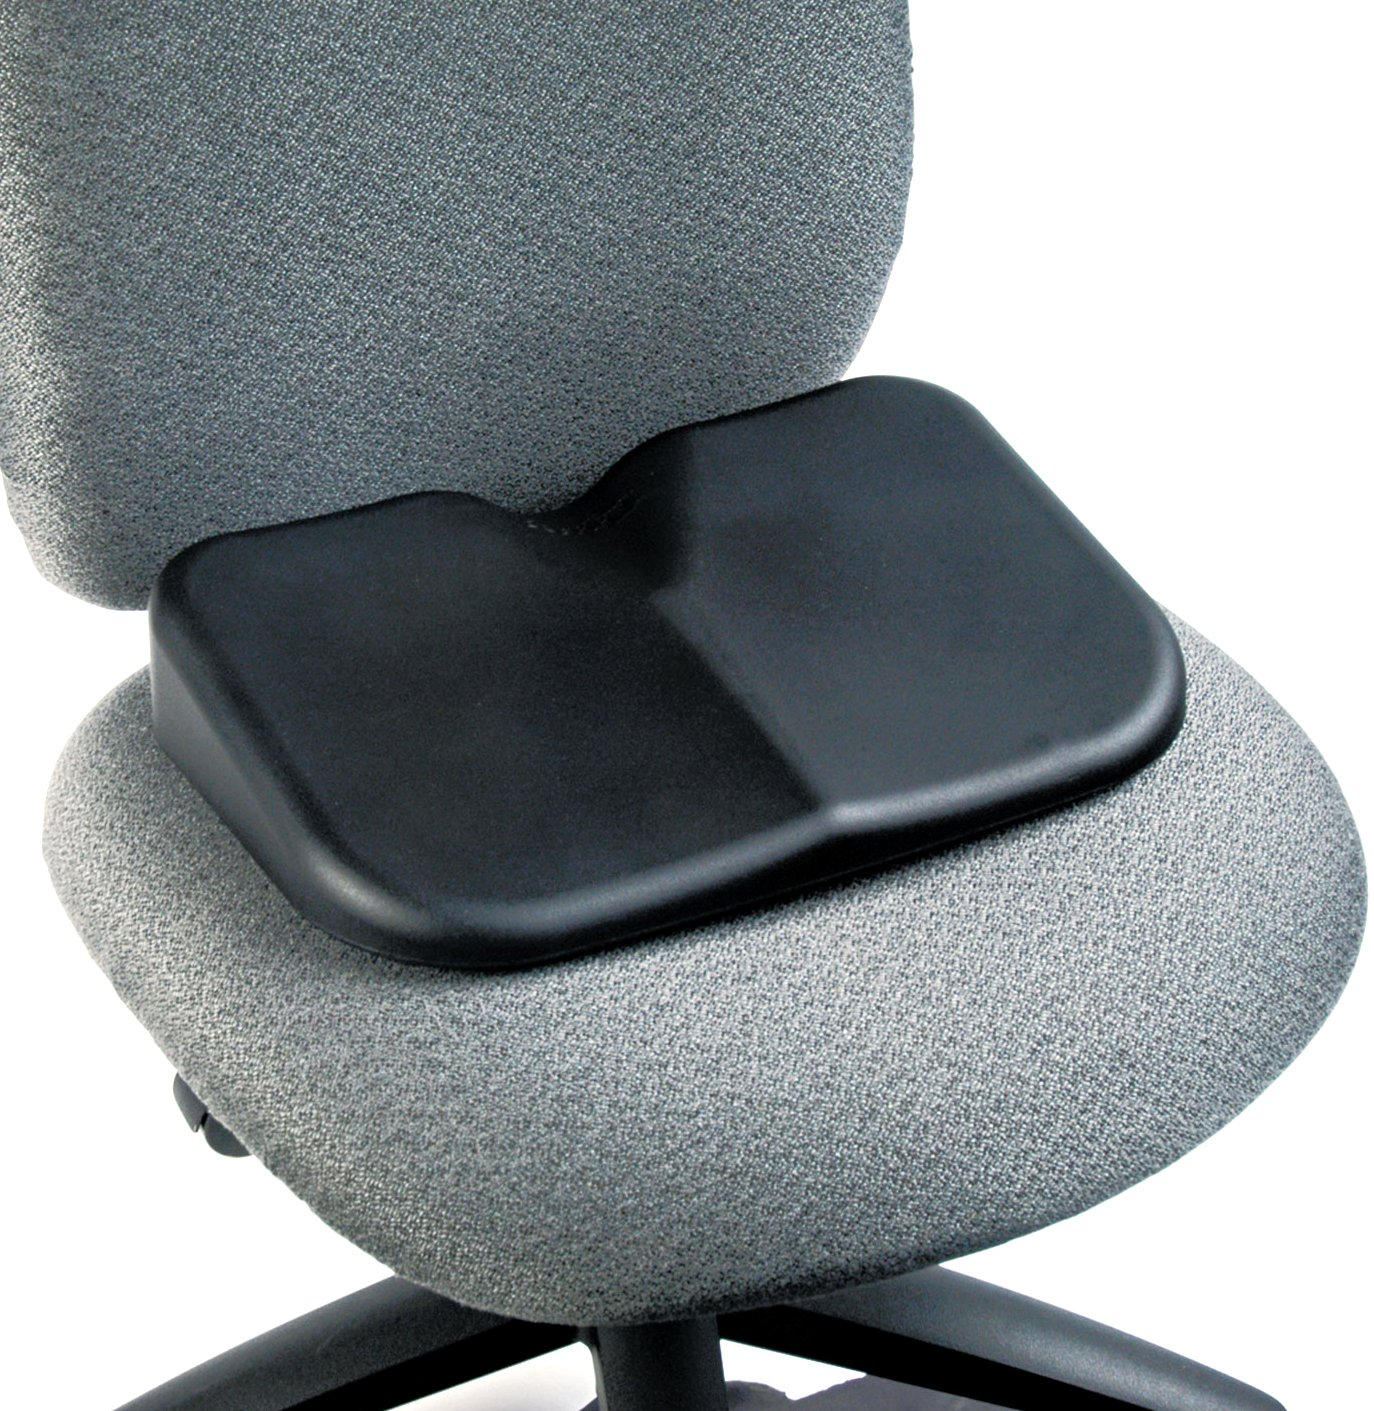 amazon com safco products 7152bl softspot seat cushion black